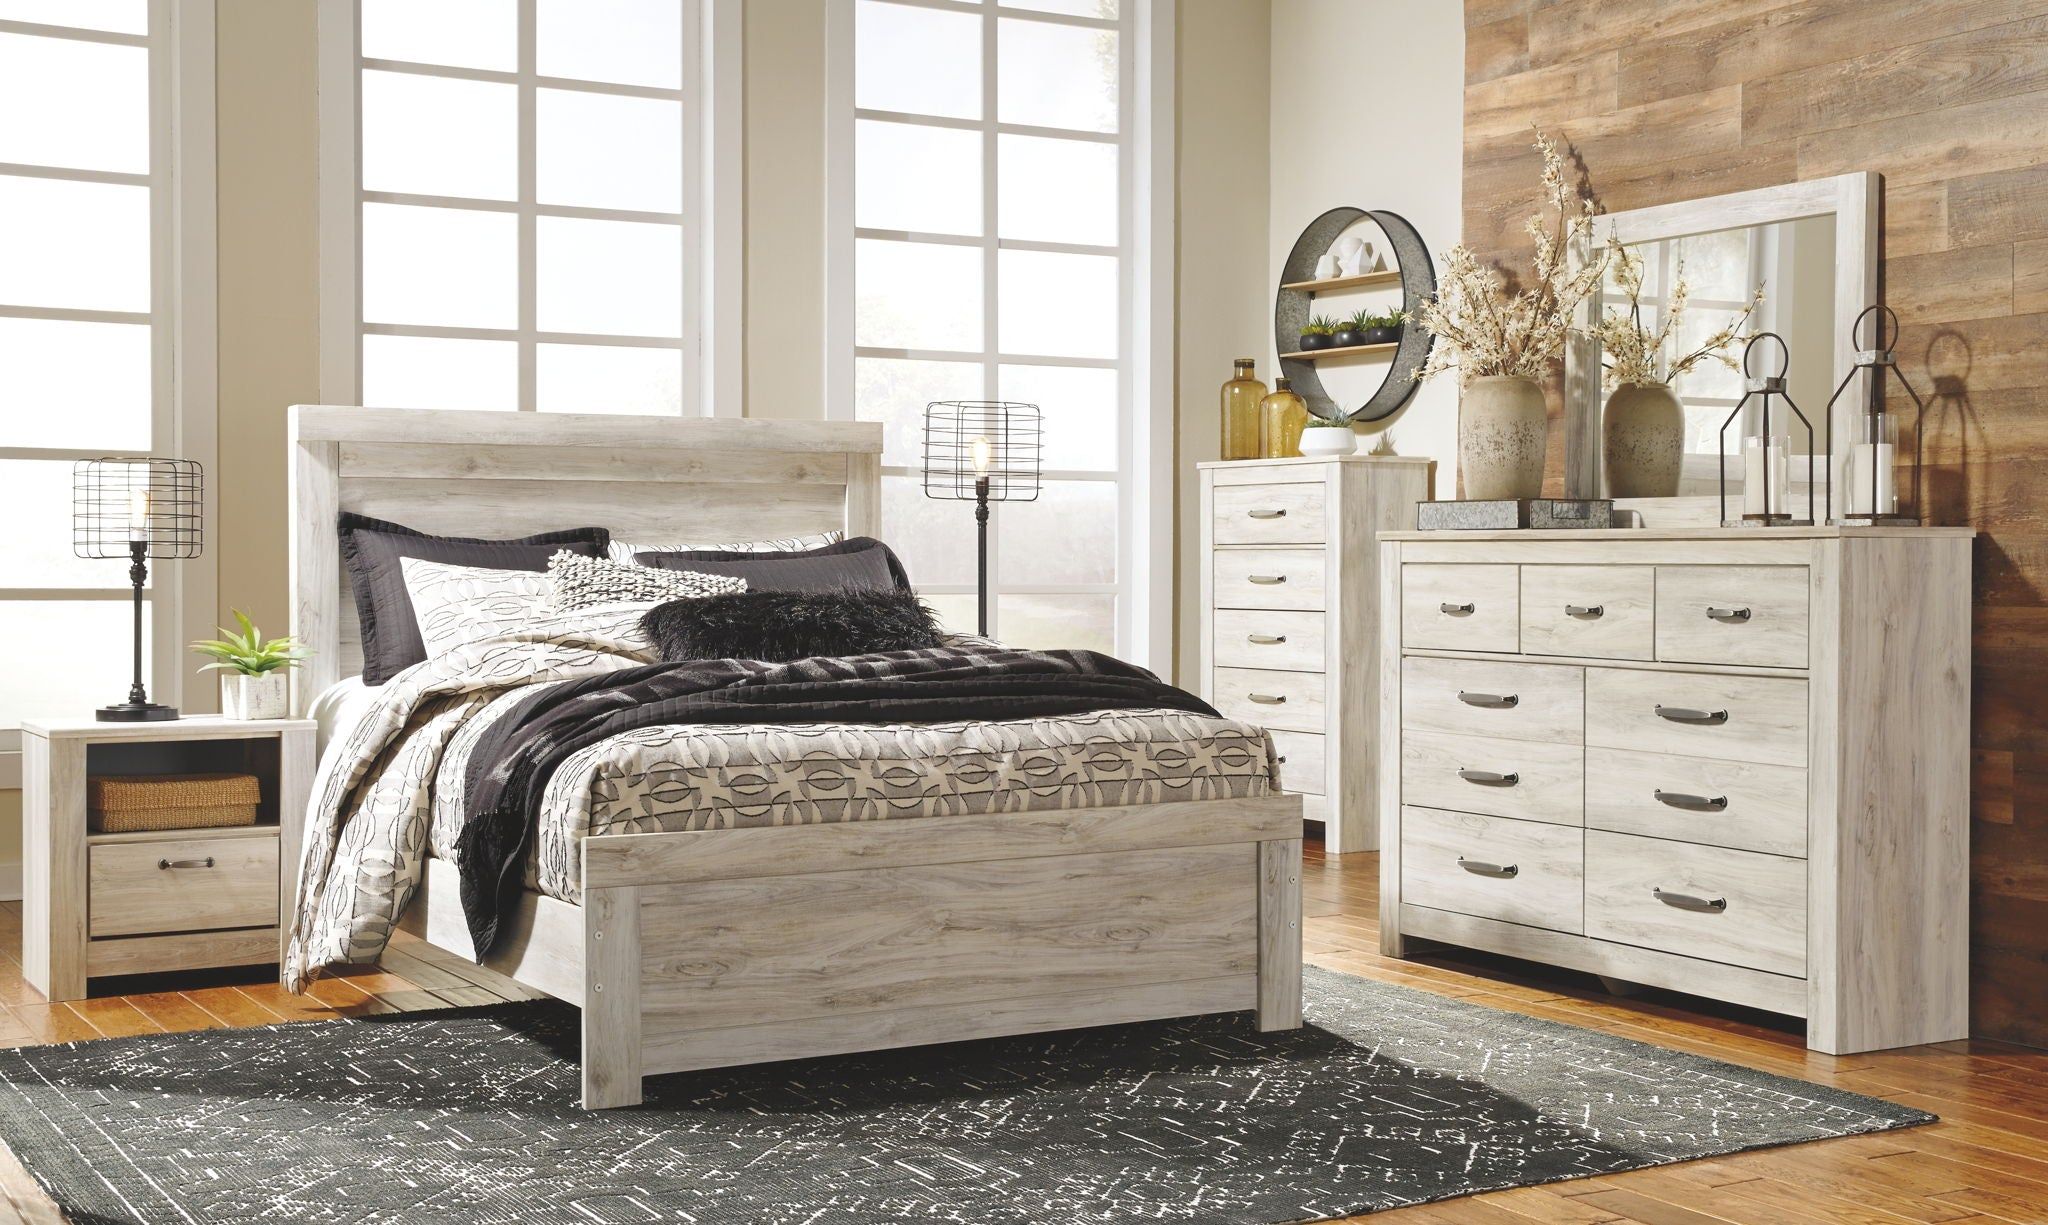 Bellaby Chest of Drawers | Calgary's Furniture Store